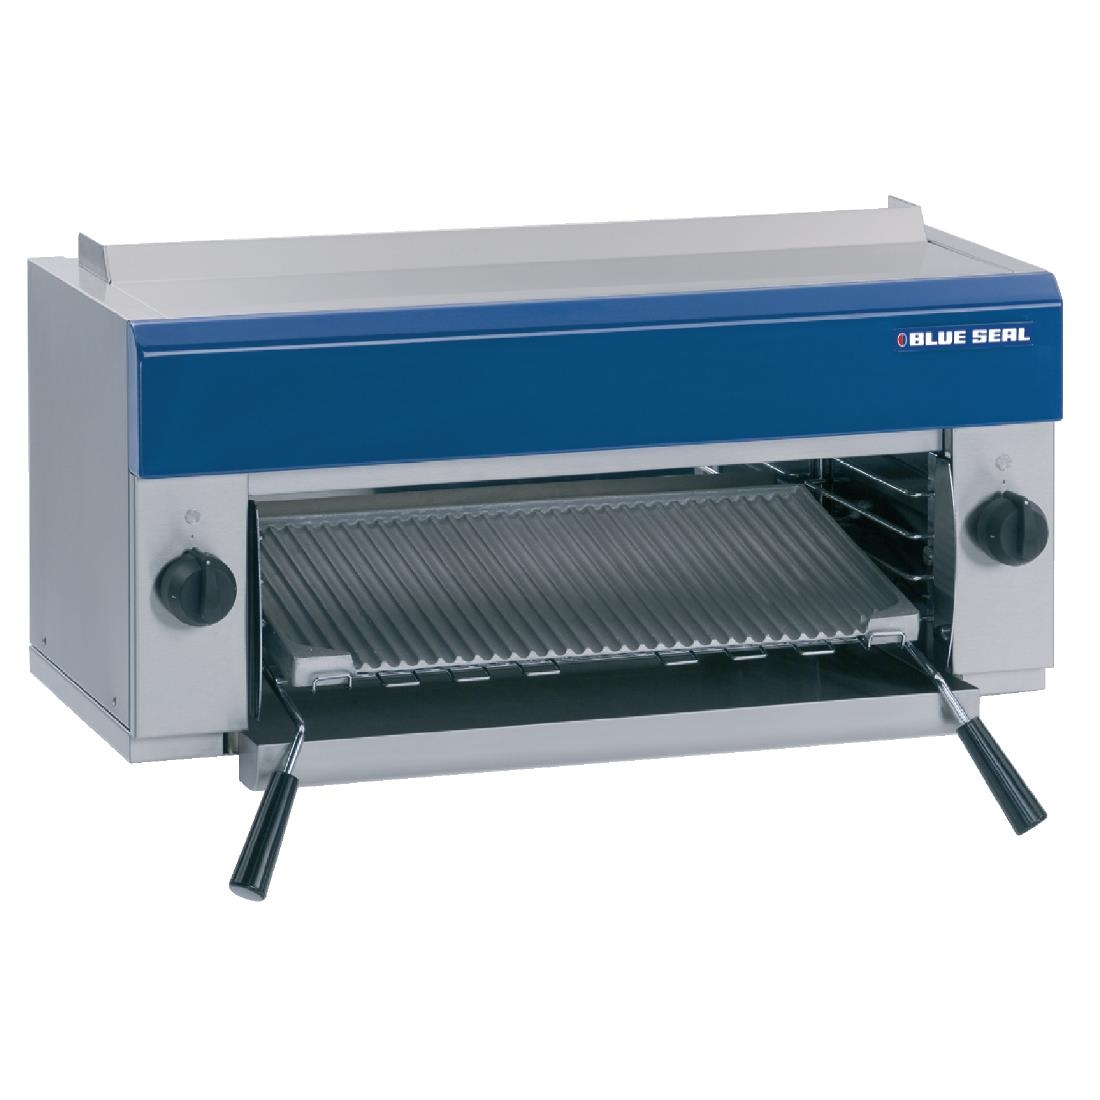 Blue Seal Salamander LPG Gas Grill G91B - J561-P - Buy Online at ...